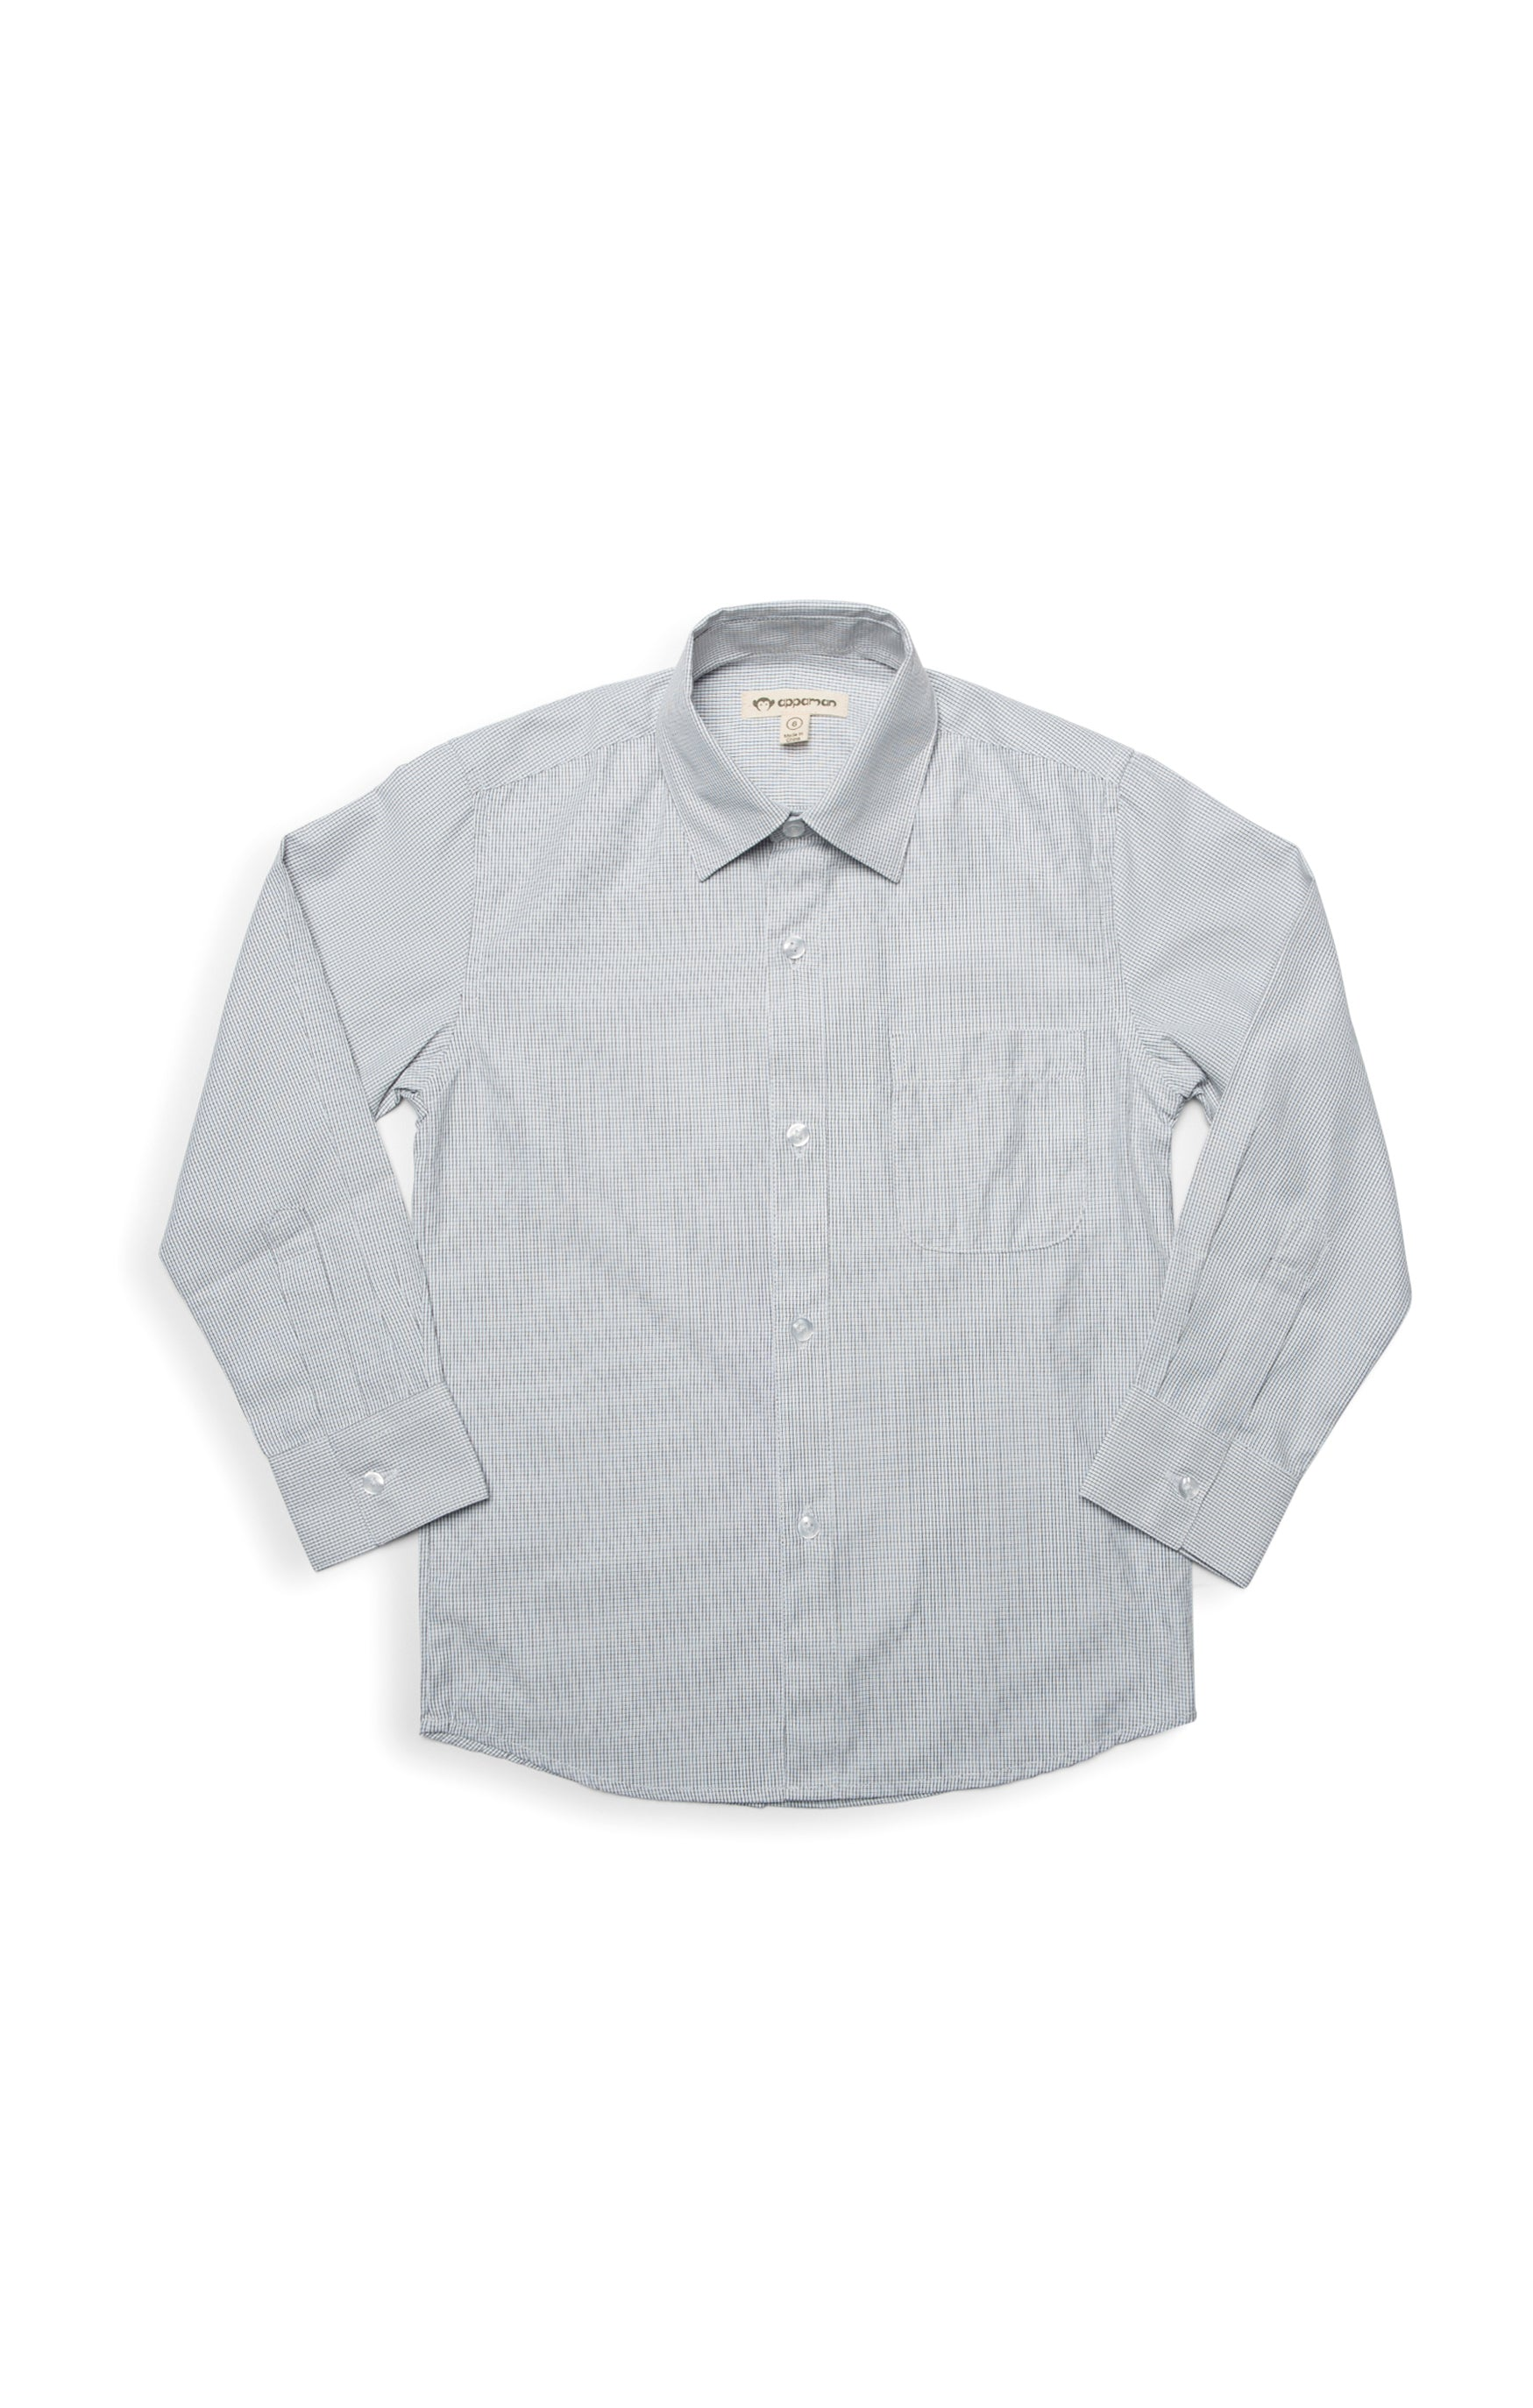 Appaman Dress Shirt - Micro Windowpane